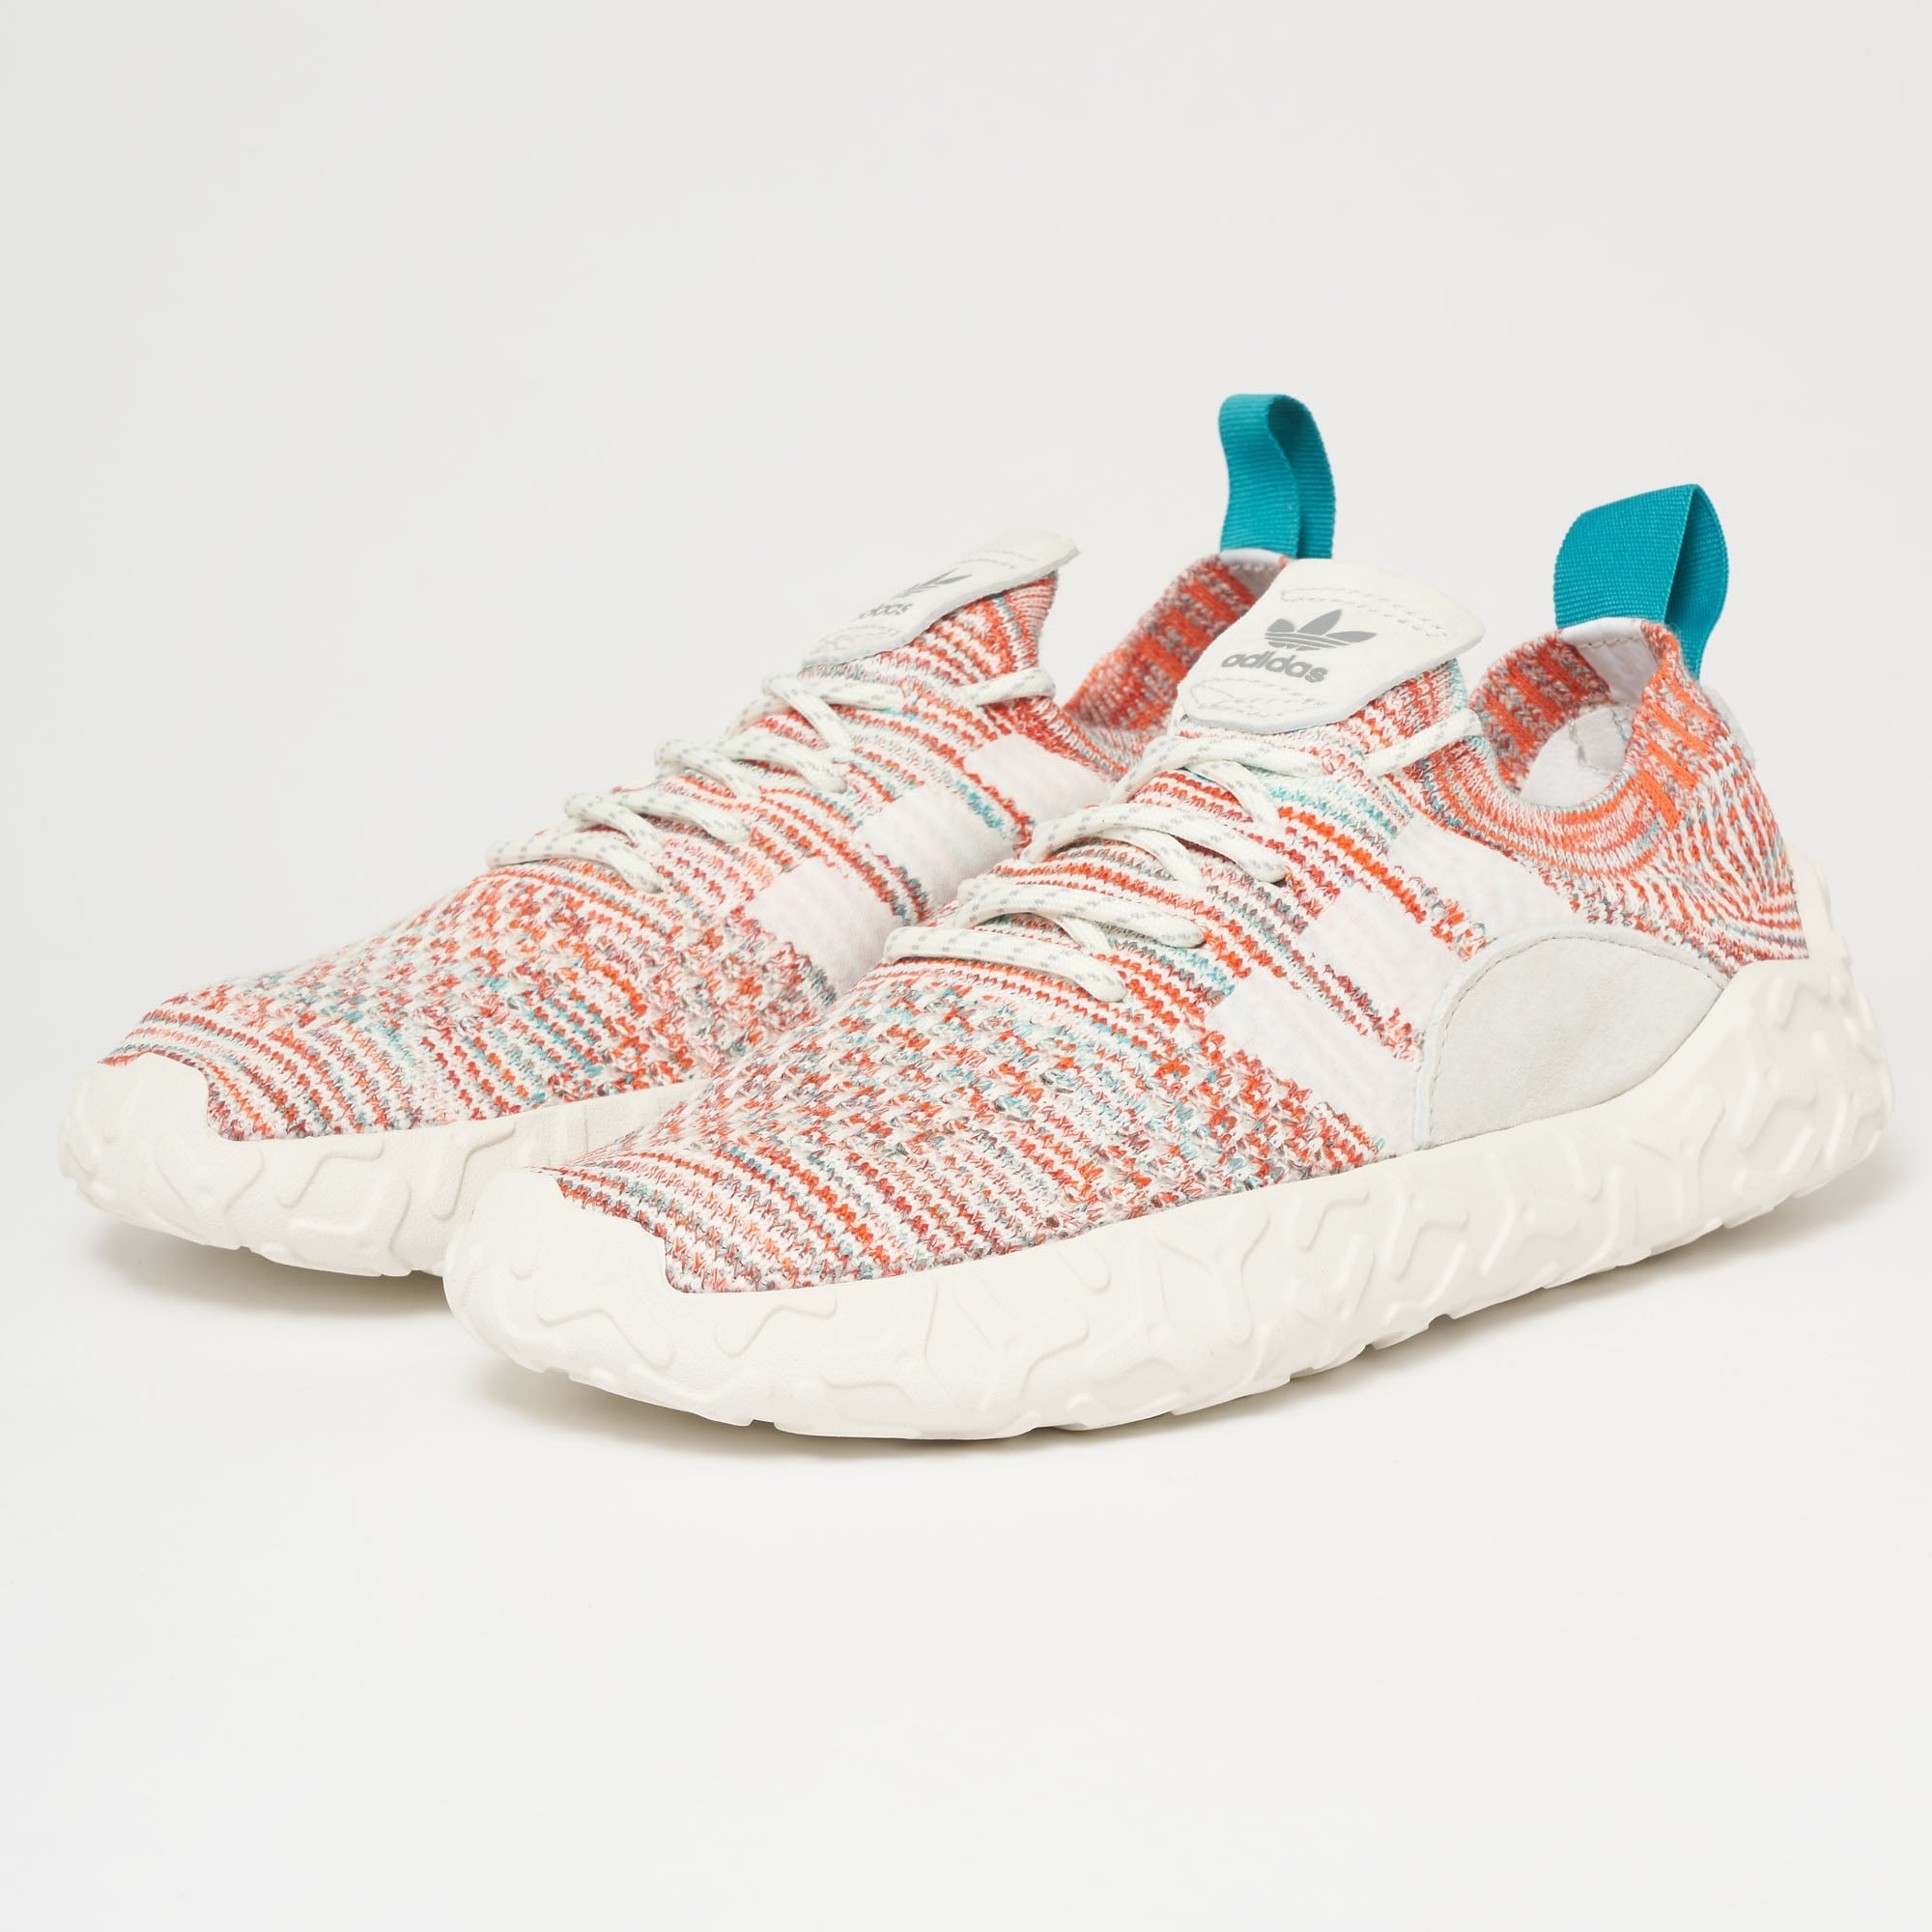 cheap for discount fc3f5 655b9 F22 Primeknit - Trace Orange, Crystal White amp FTWR White